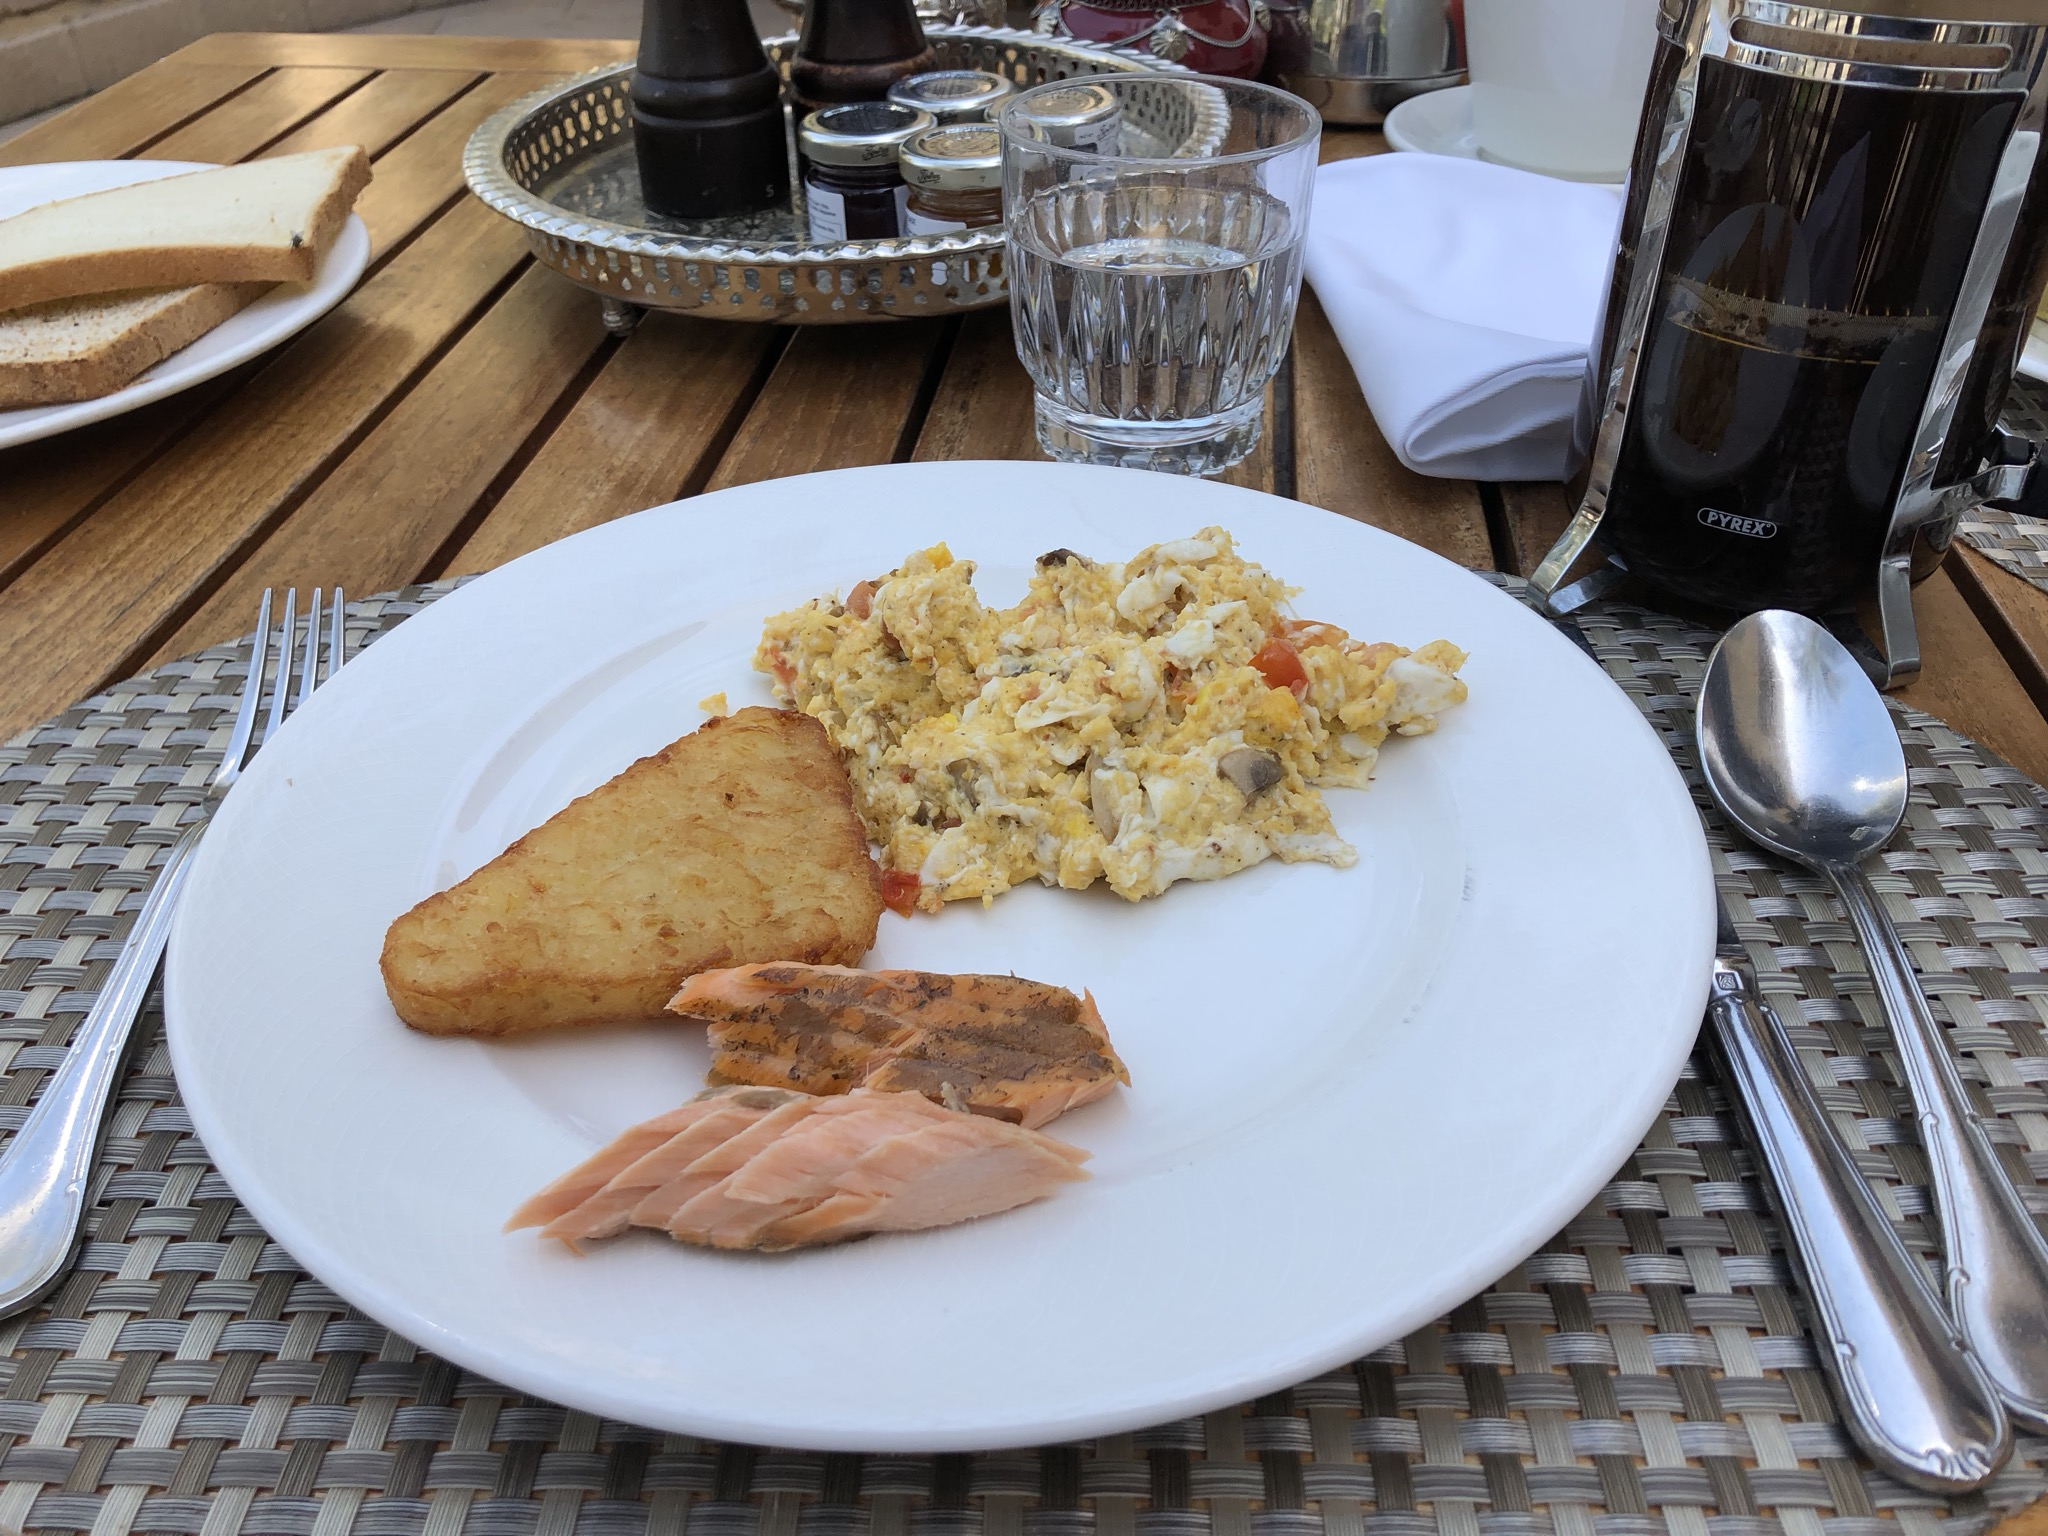 That salmon was my favorite breakfast item on offer - delicious